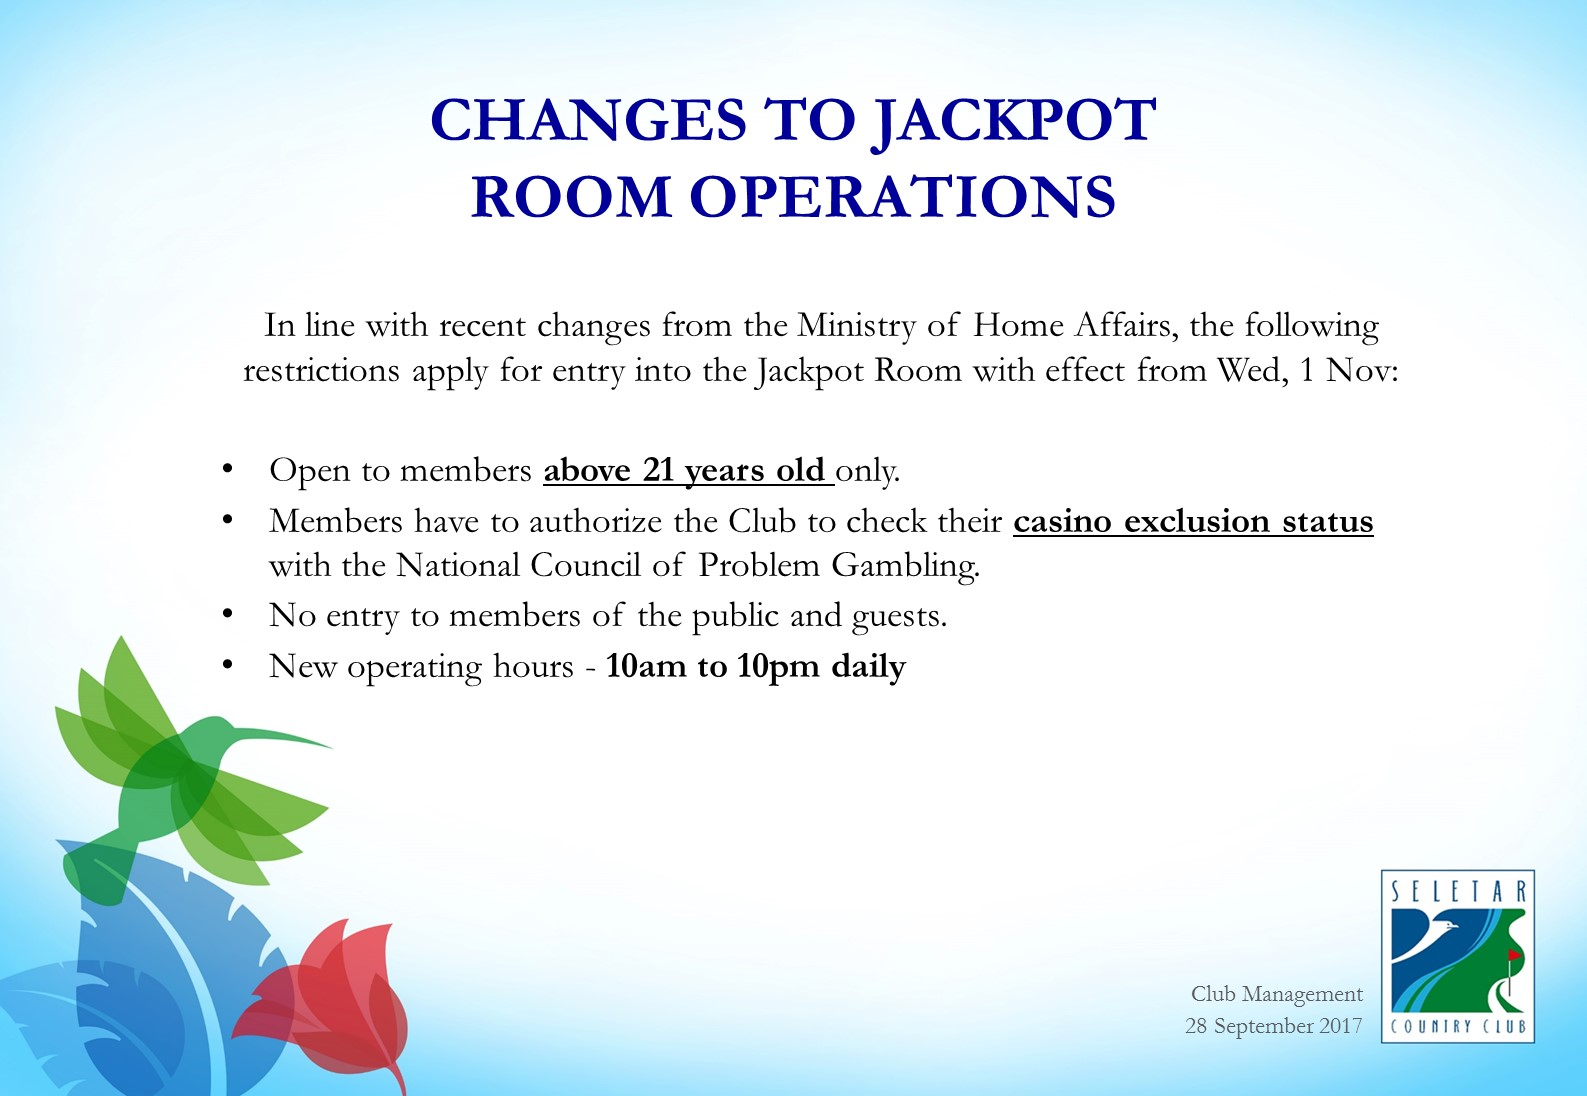 Changes to Jackpot Room Operations_R2